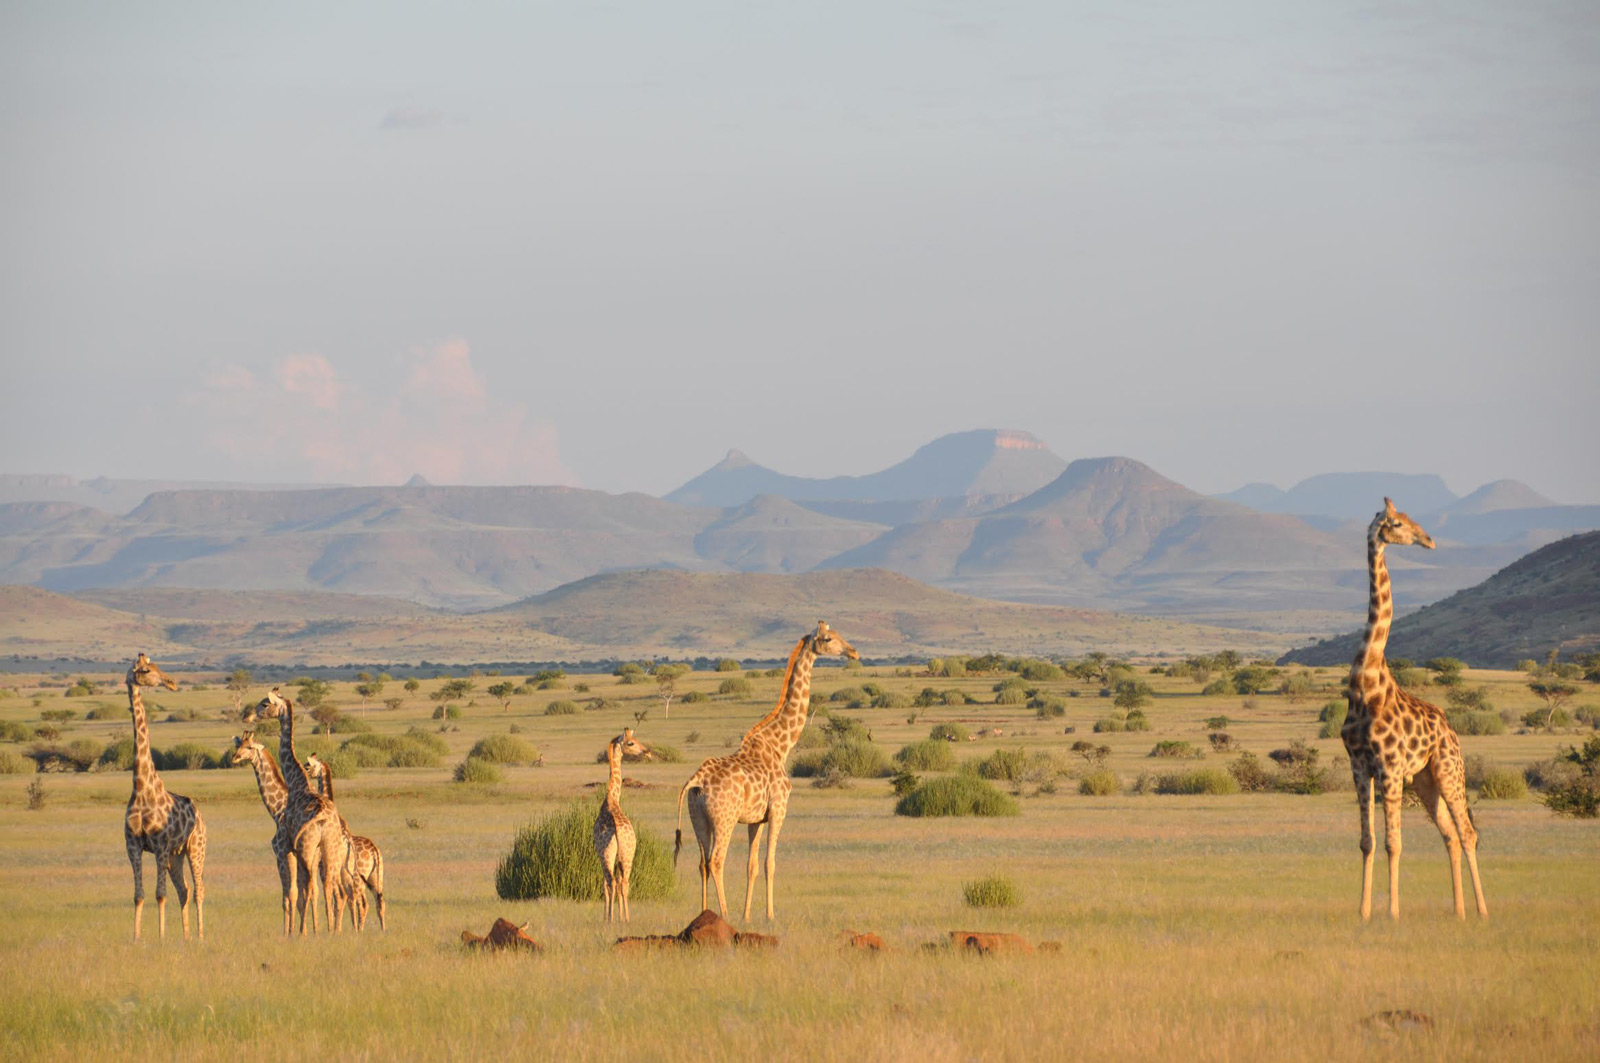 A journey with giraffes - Africa Geographic Magazine